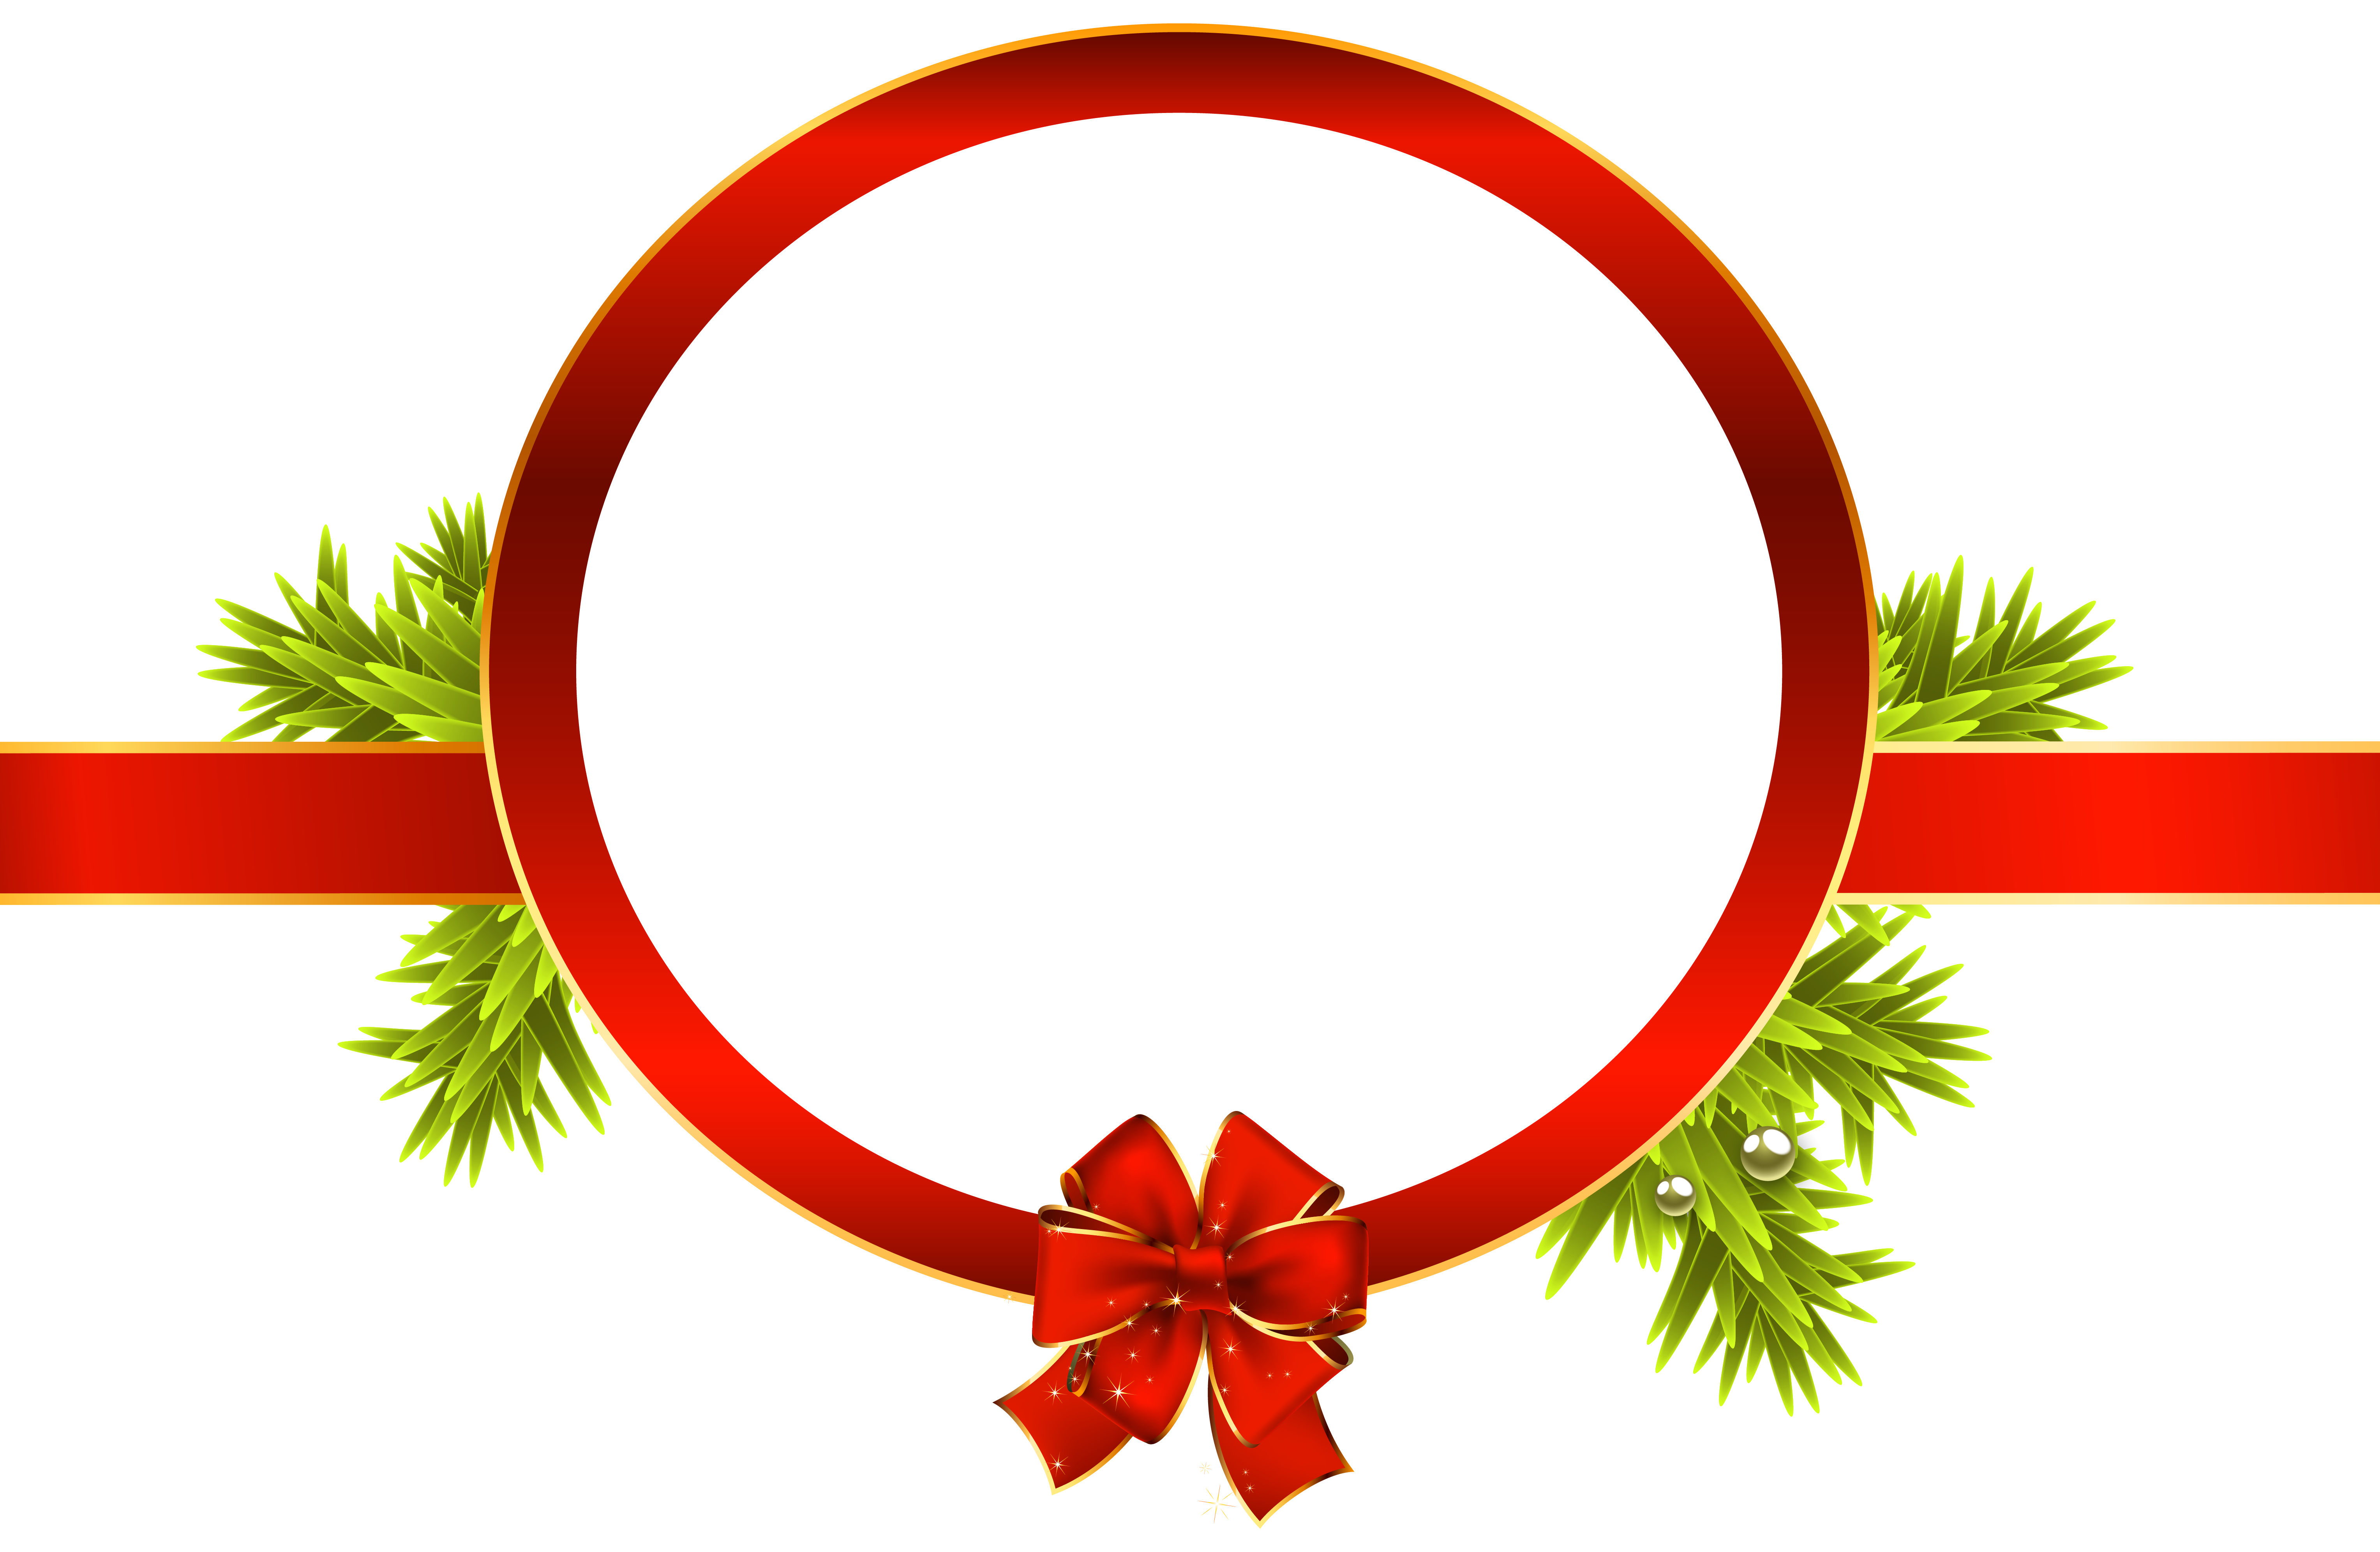 Snowflake label clipart image library stock 12 Days Of Christmas Clipart Free at GetDrawings.com | Free for ... image library stock